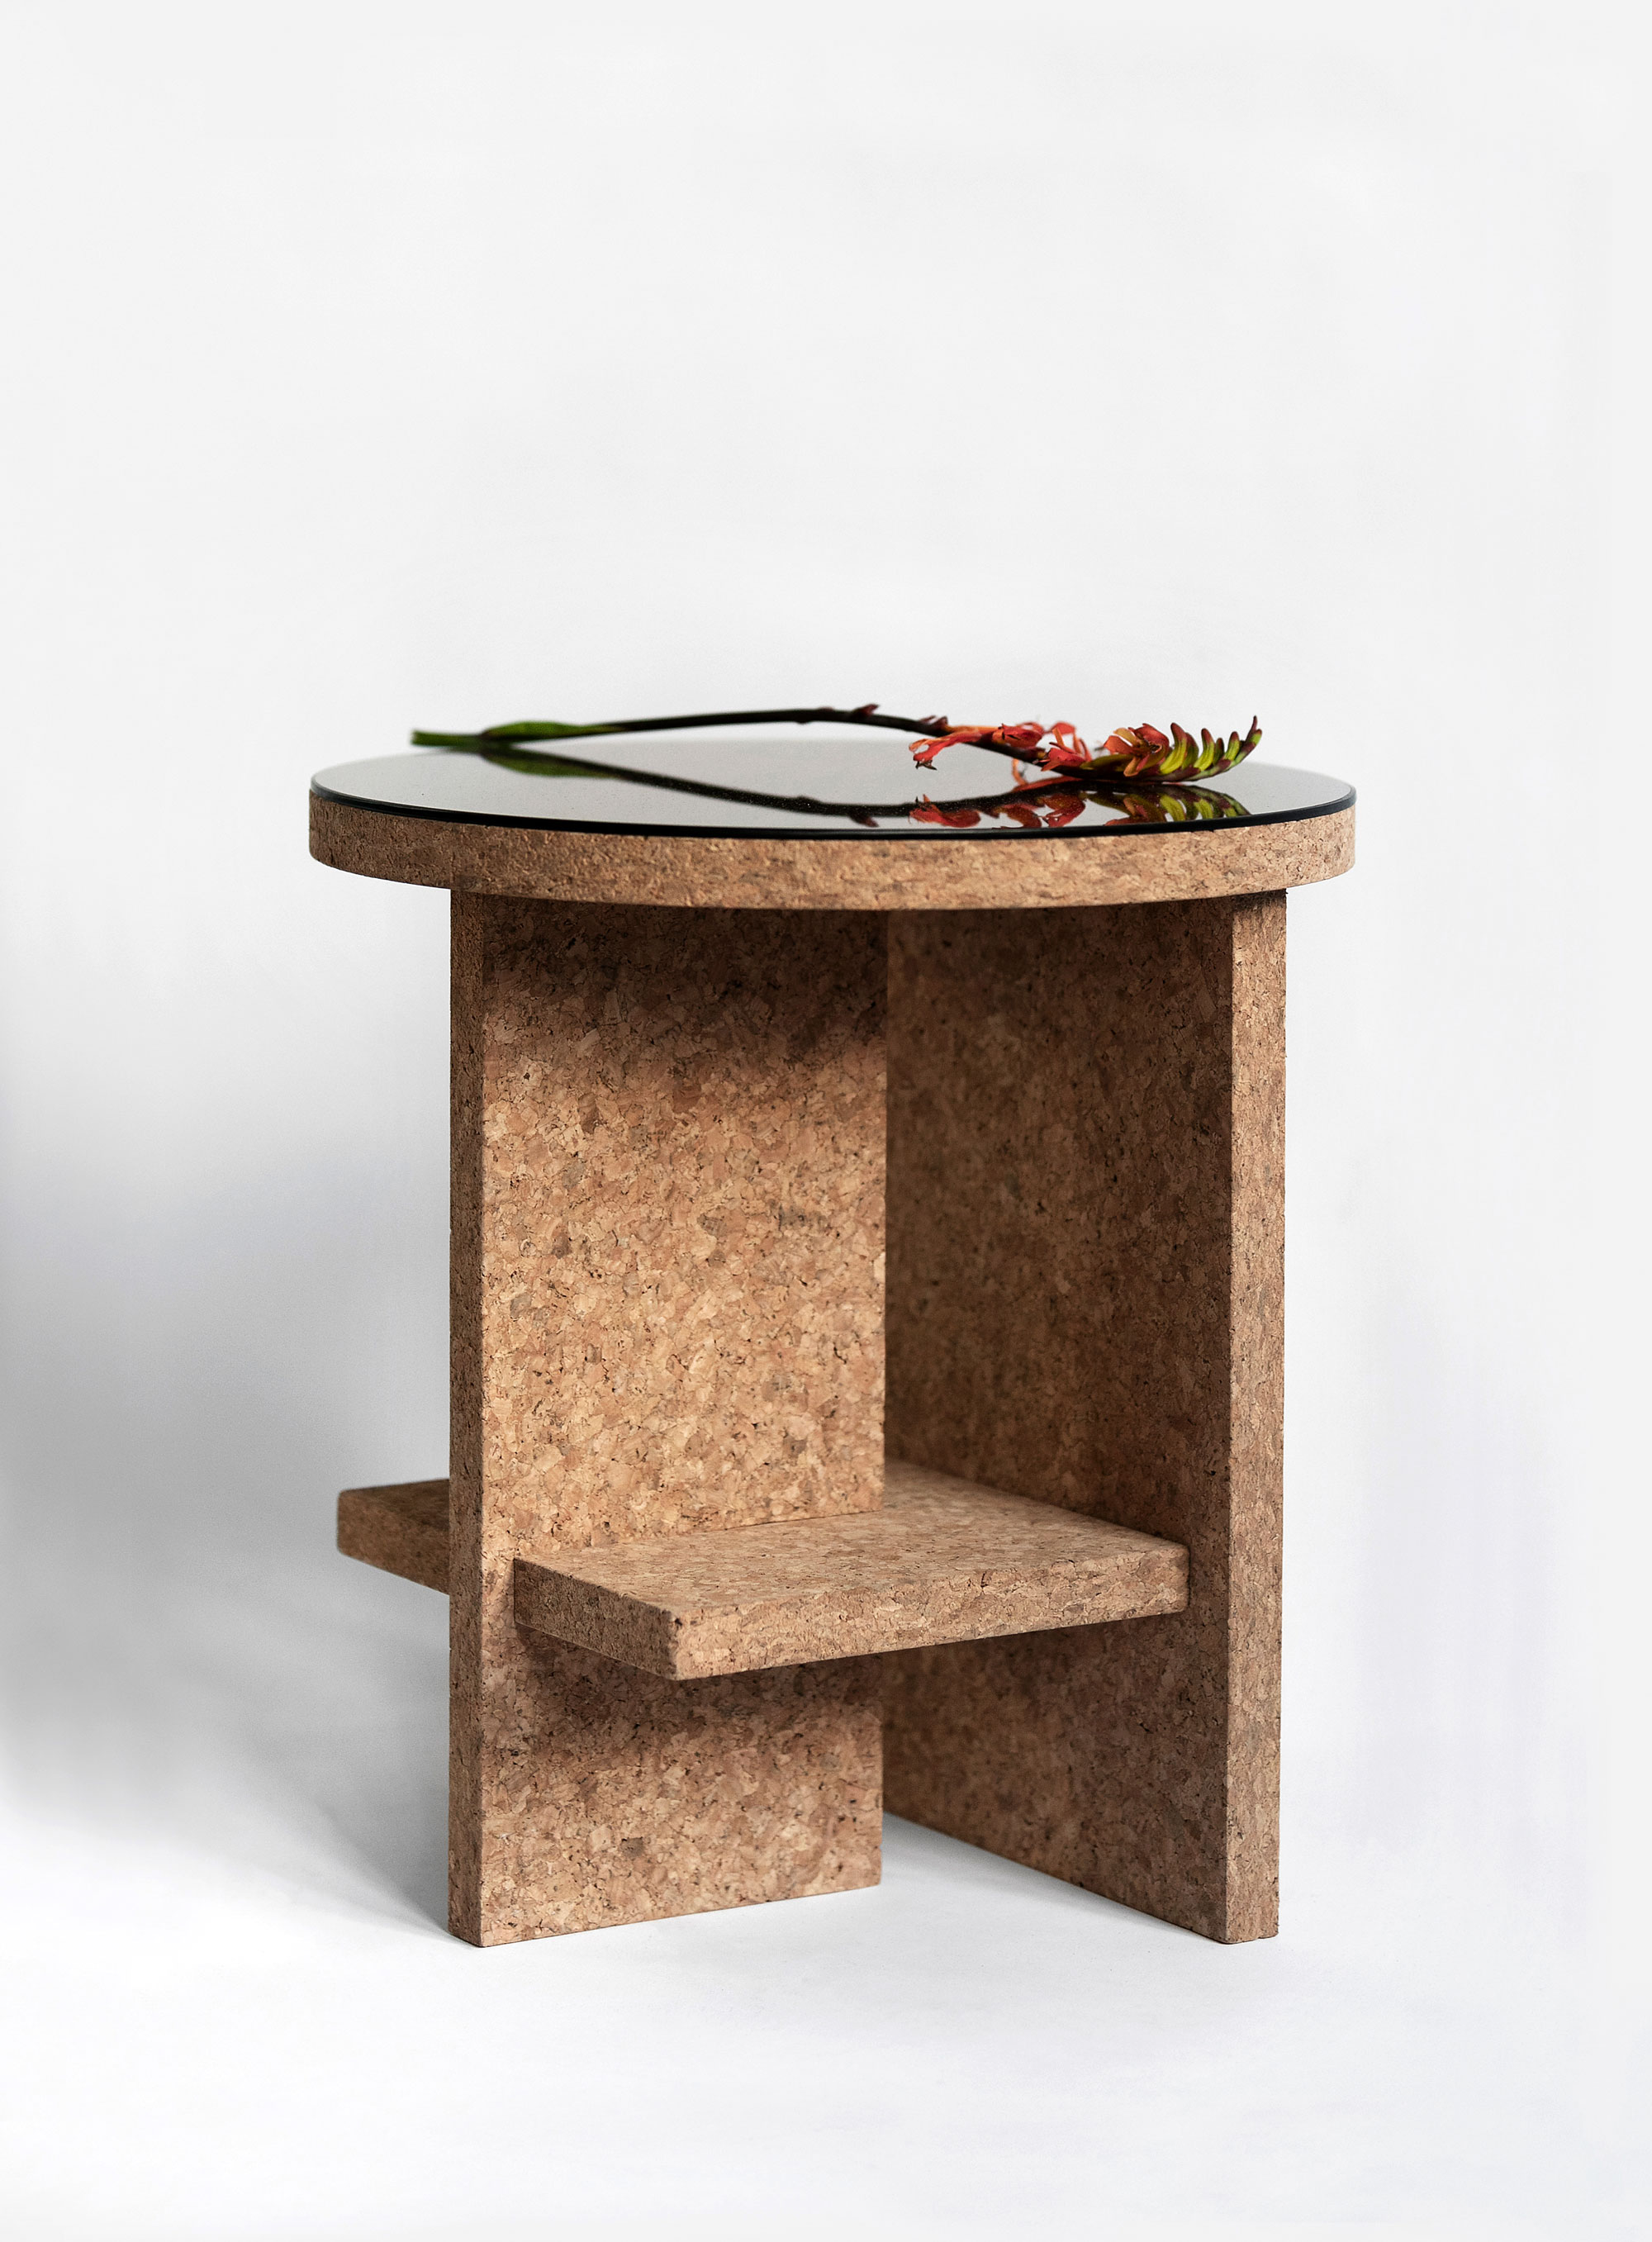 Cruz del Sur Side Table Light Cork - <p>Compact and light, flat-pack side table in Portuguese cork. This special edition designed for Disegno Magazine Cruz del Sur table snaps on together in just seconds without the need of tools, it's made in London using sustainable cork from Portugal and comes in a flat-pack. This mighty but compact table features a shelf for reading books and accessories to keep your tabletop clutter-free. Available in light or dark cork finished in natural oil-wax with the option to add-on a bronze finish mirror top. </p>